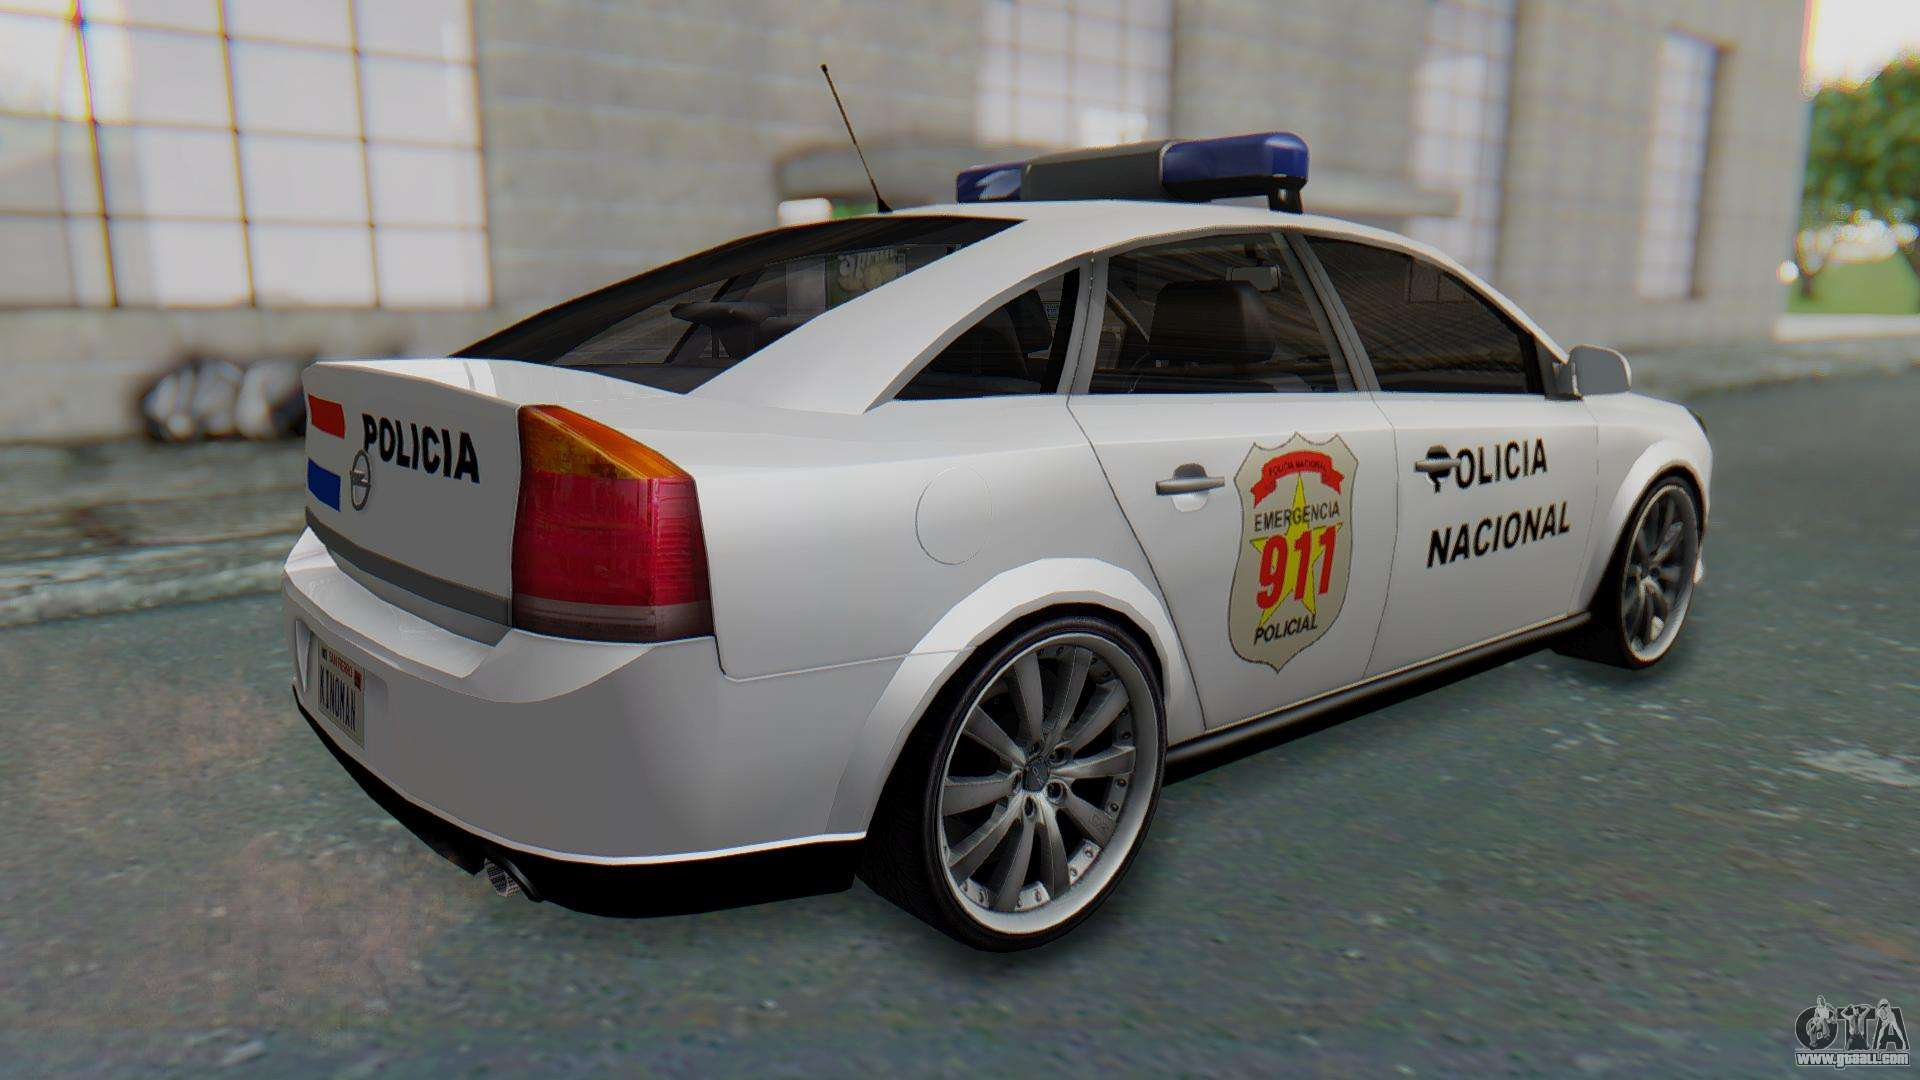 opel vectra 2005 policia for gta san andreas. Black Bedroom Furniture Sets. Home Design Ideas